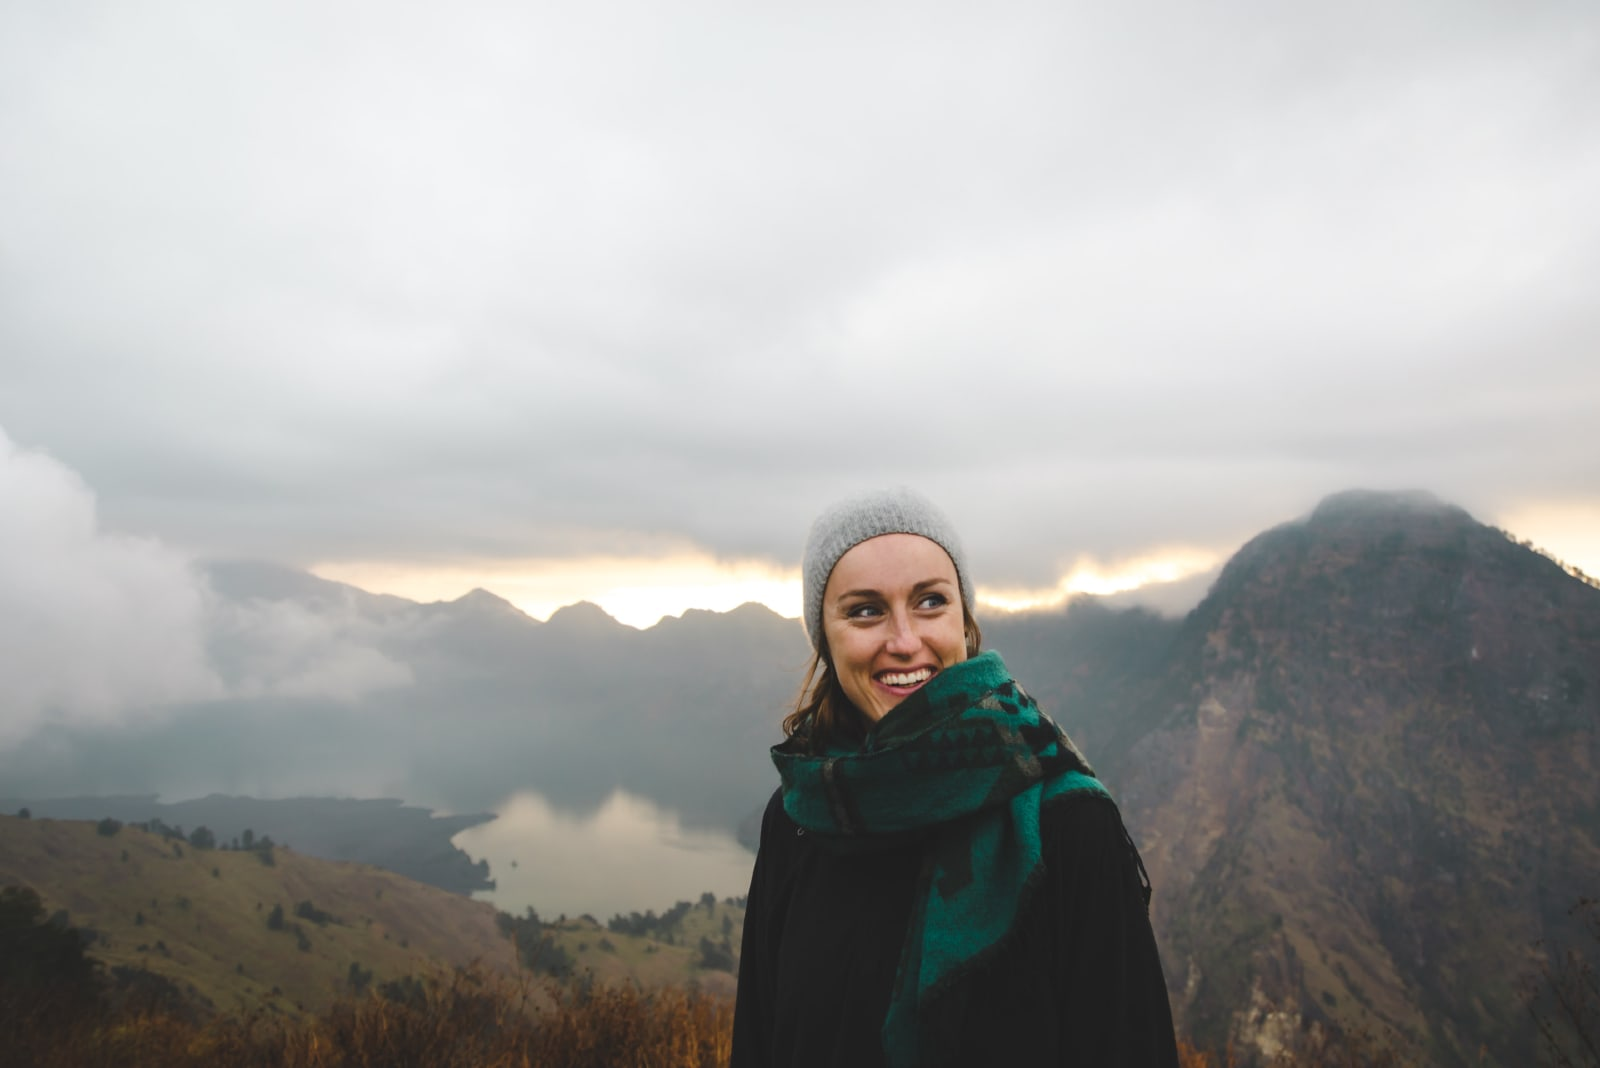 woman with green scarf smiling while standing near mountain